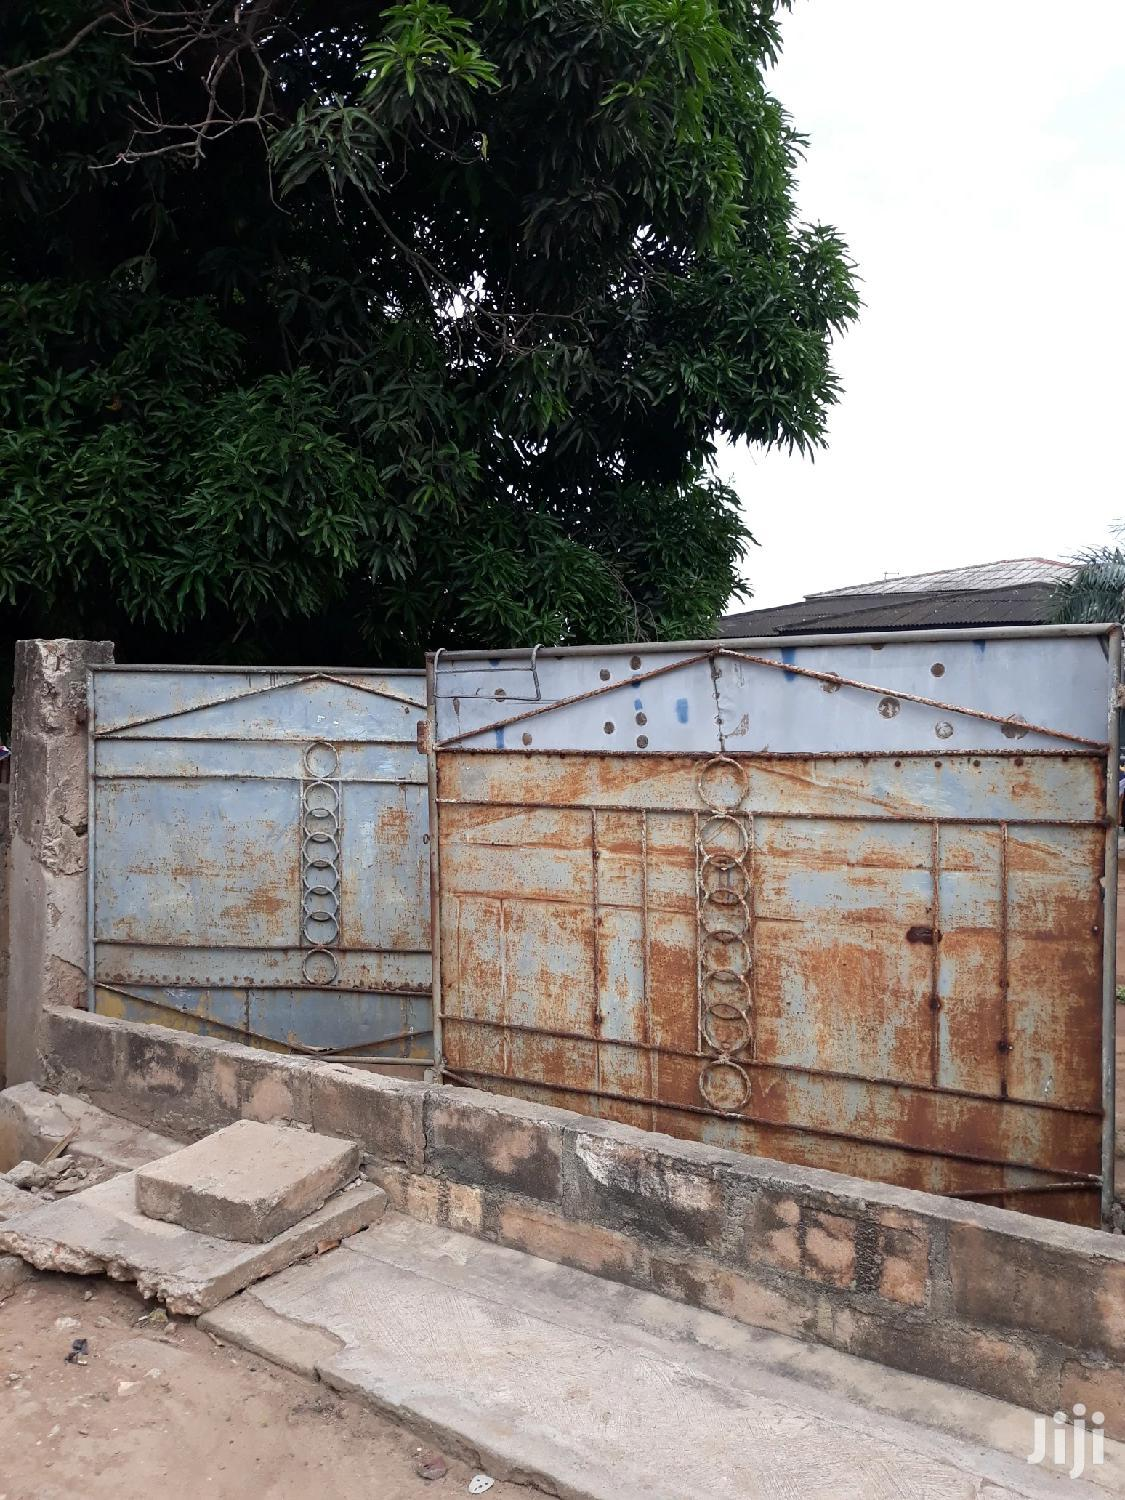 4 Bedroom House For Sale At Kaneshie.